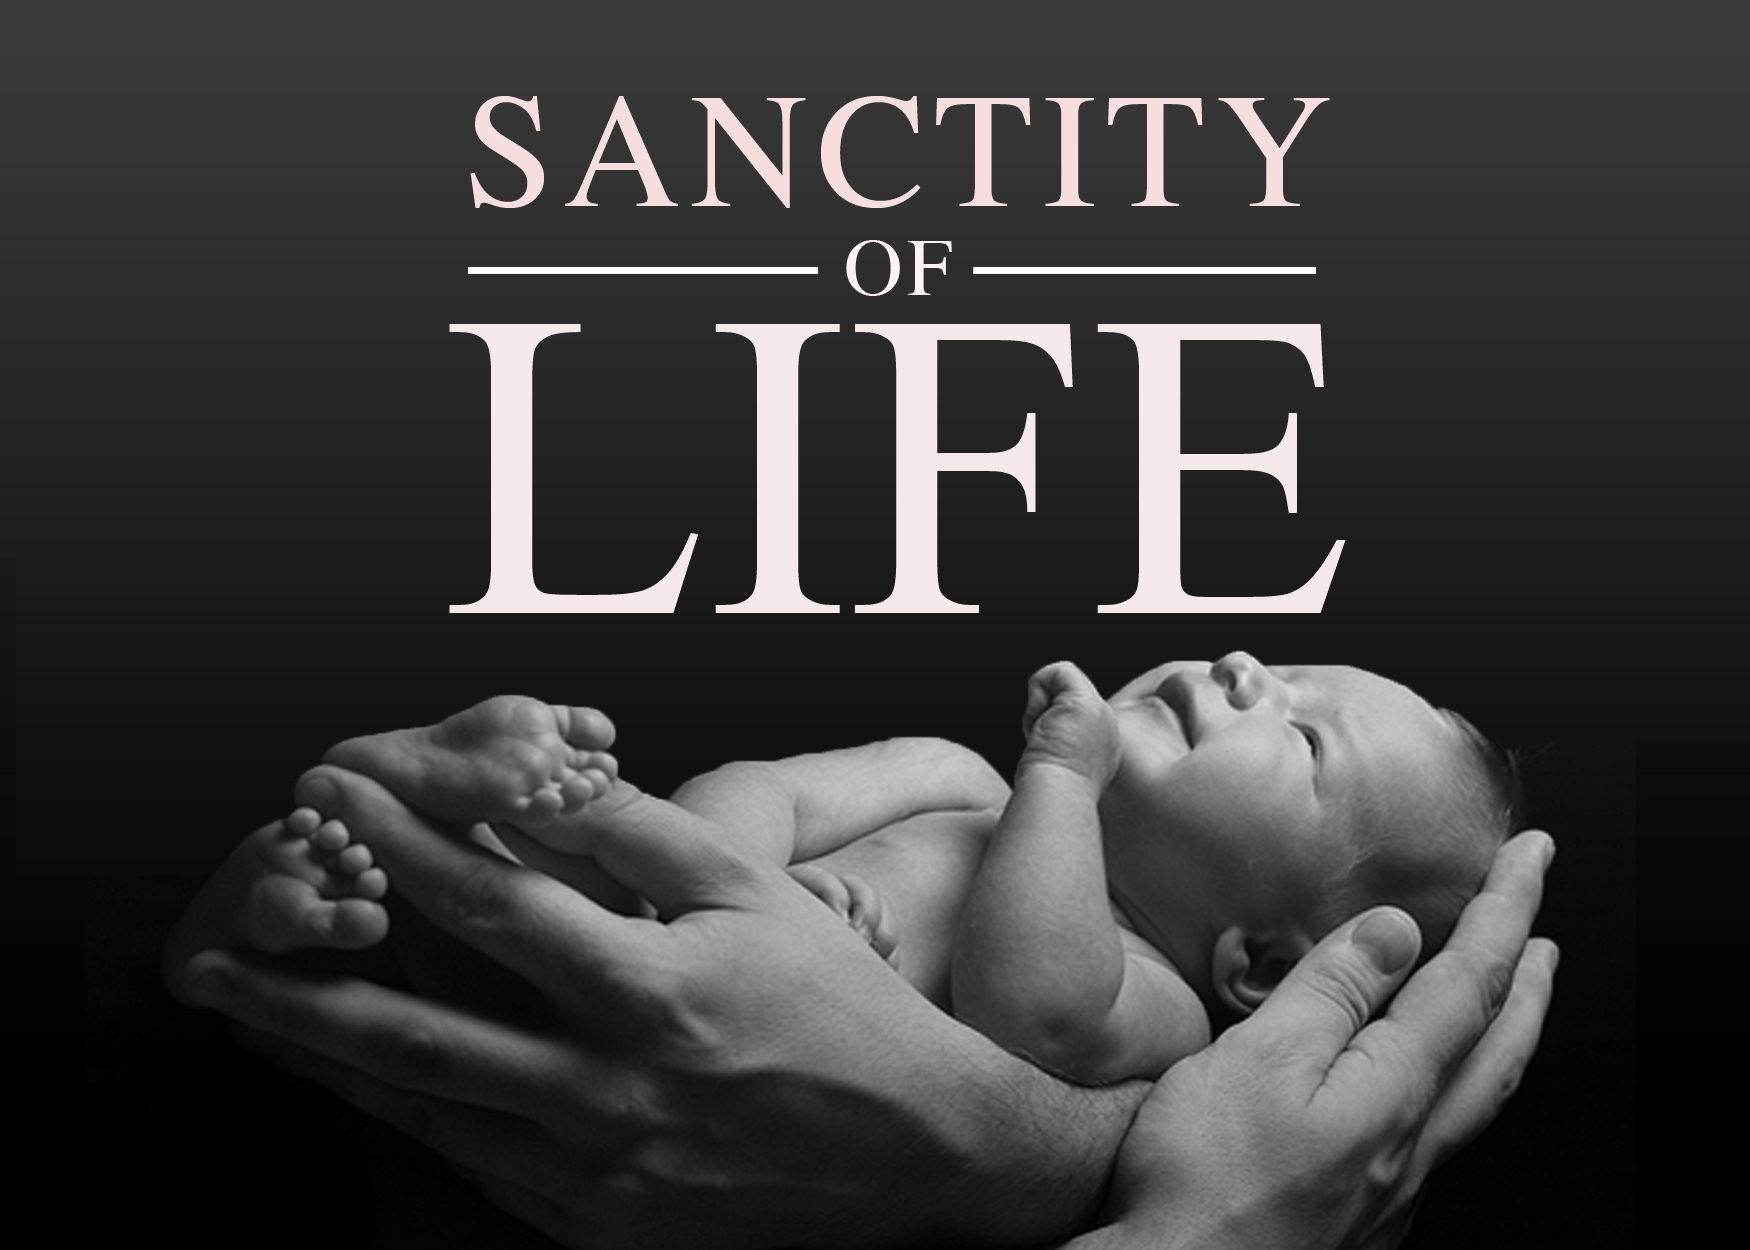 Sanctity of Human Life - Who will be the next Hero?